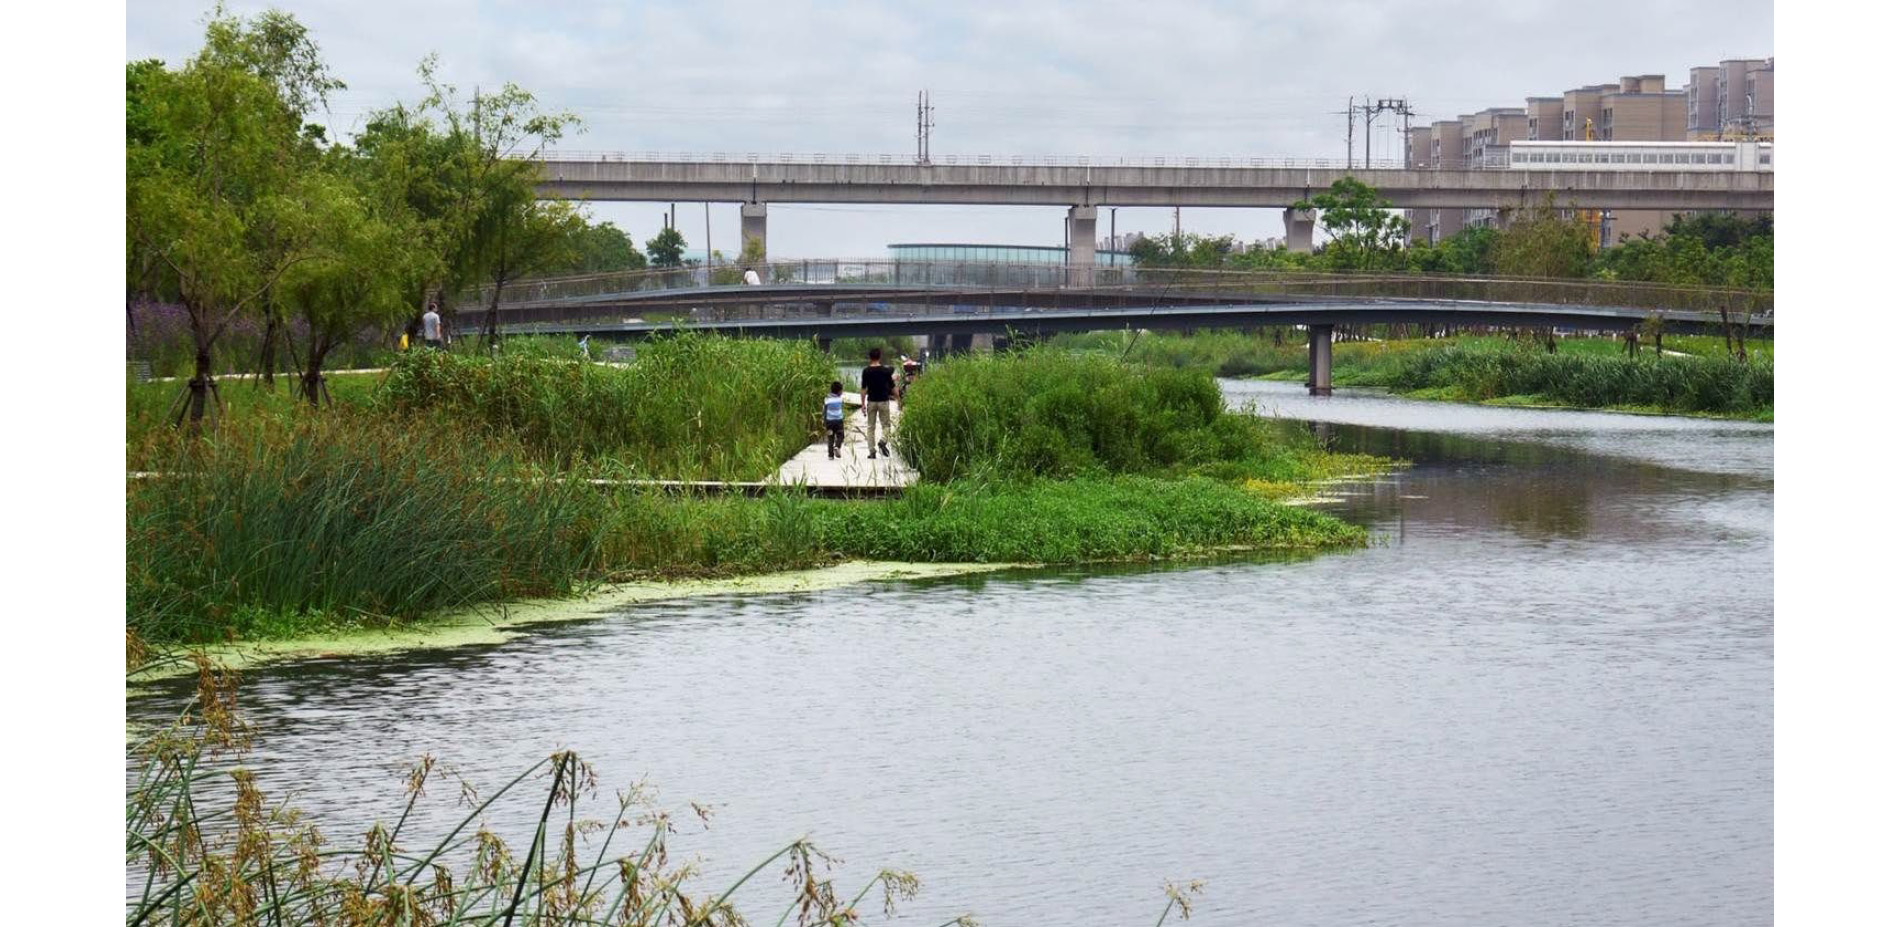 A RADICAL TRANSFORMATION IN WATER QUALITY